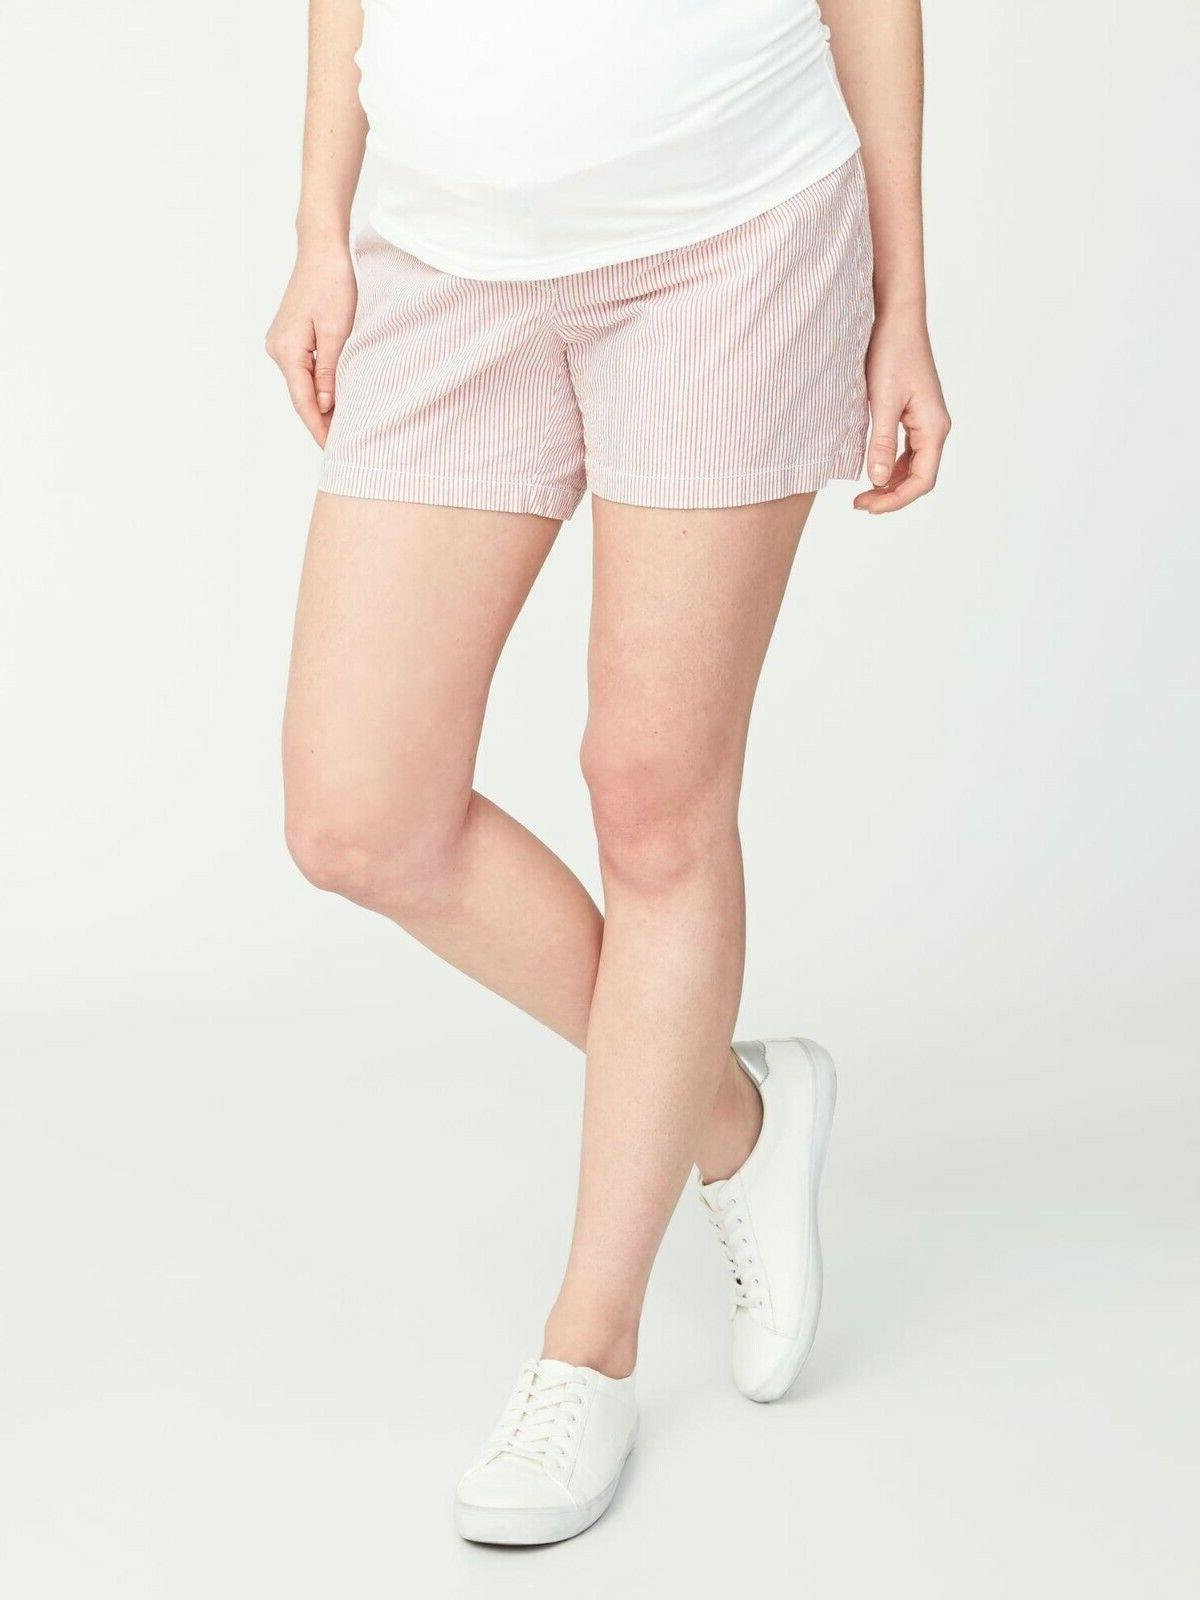 nwt sold out 5 inseam maternity side